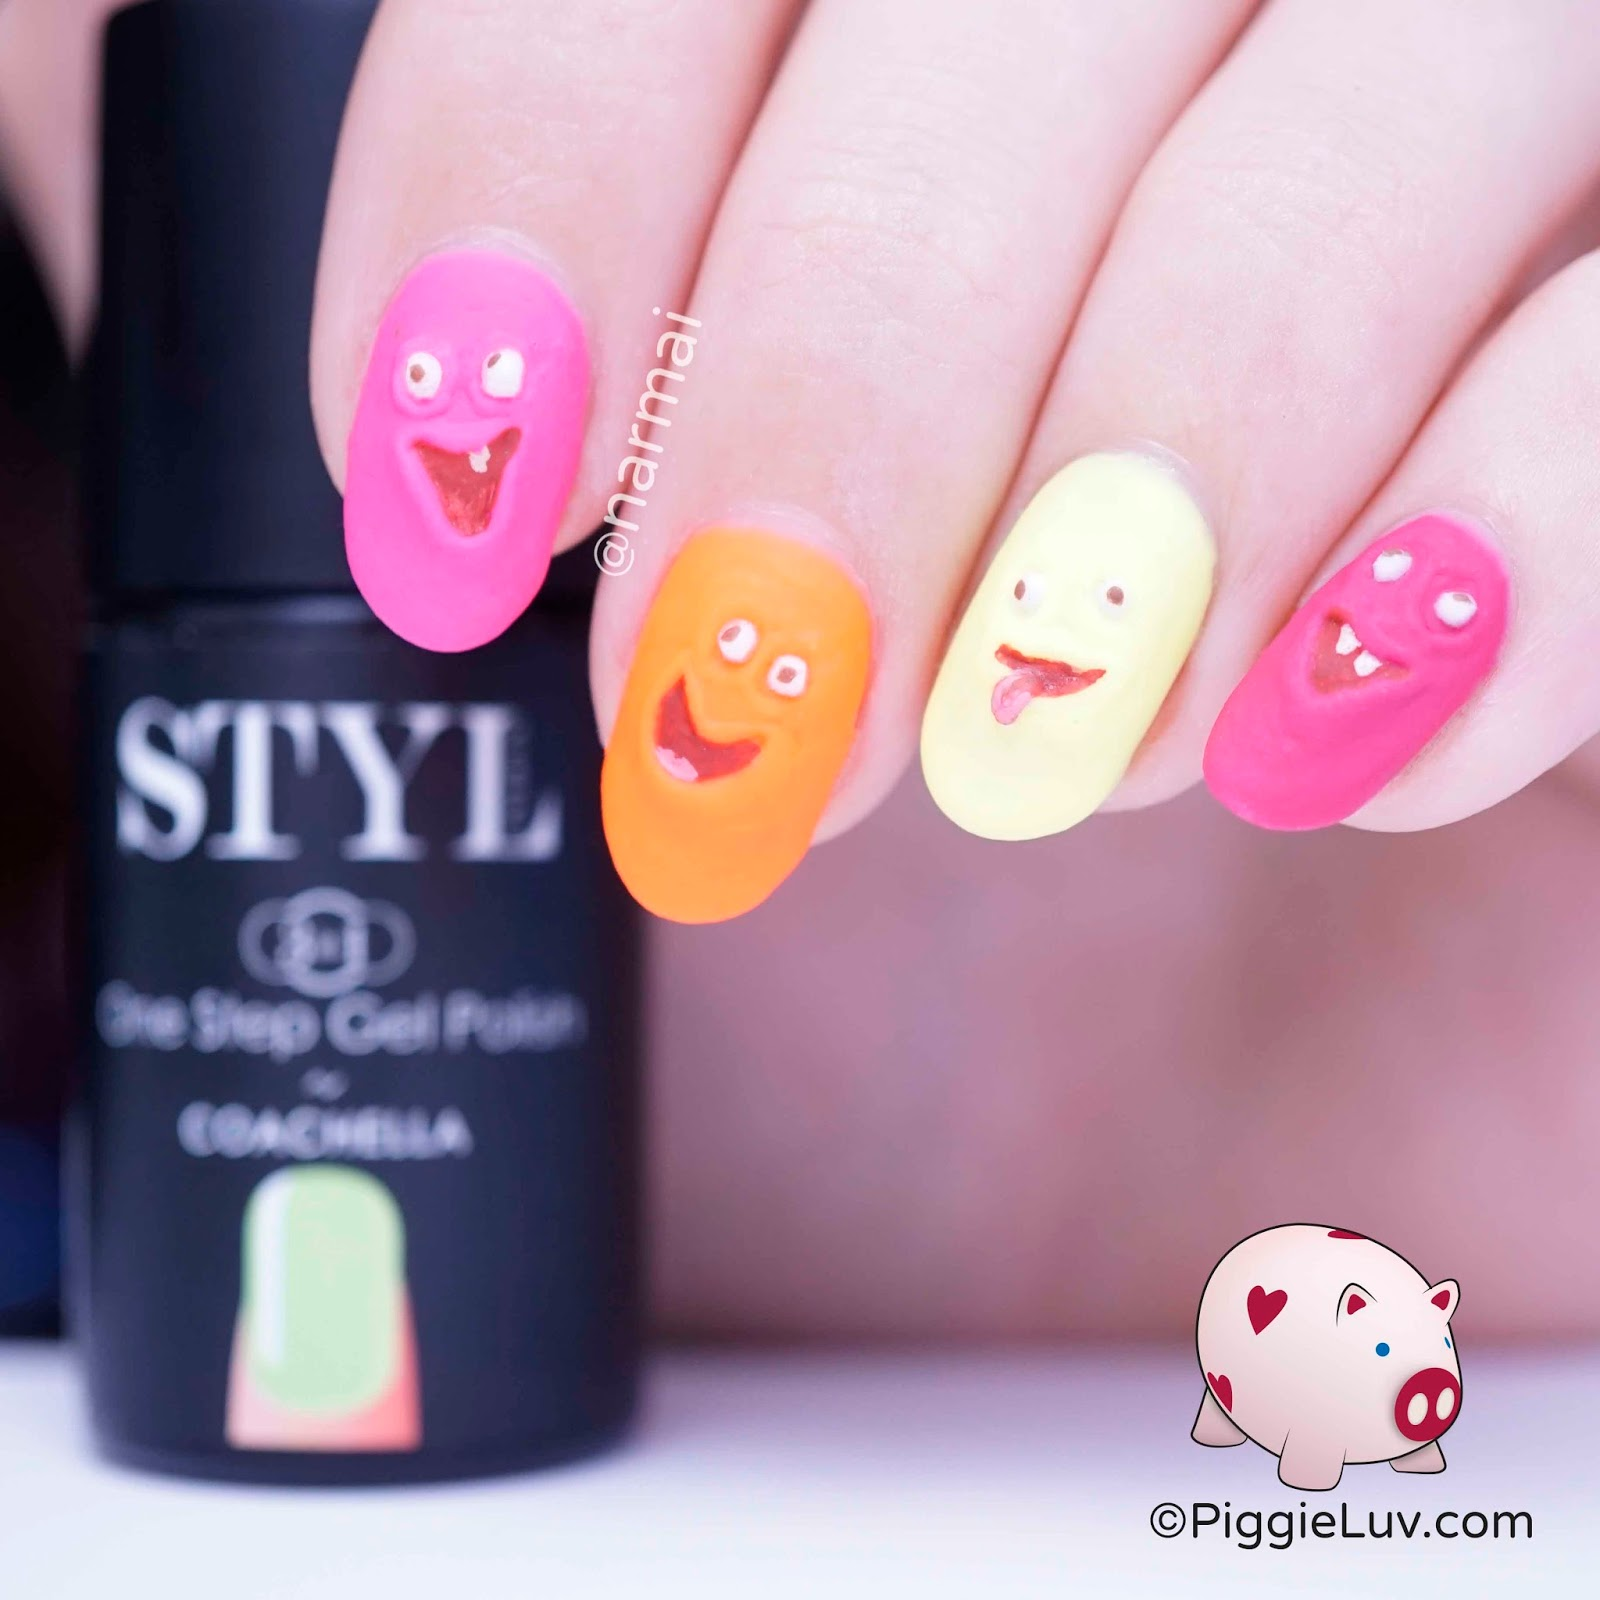 PiggieLuv: Funny faces nail art